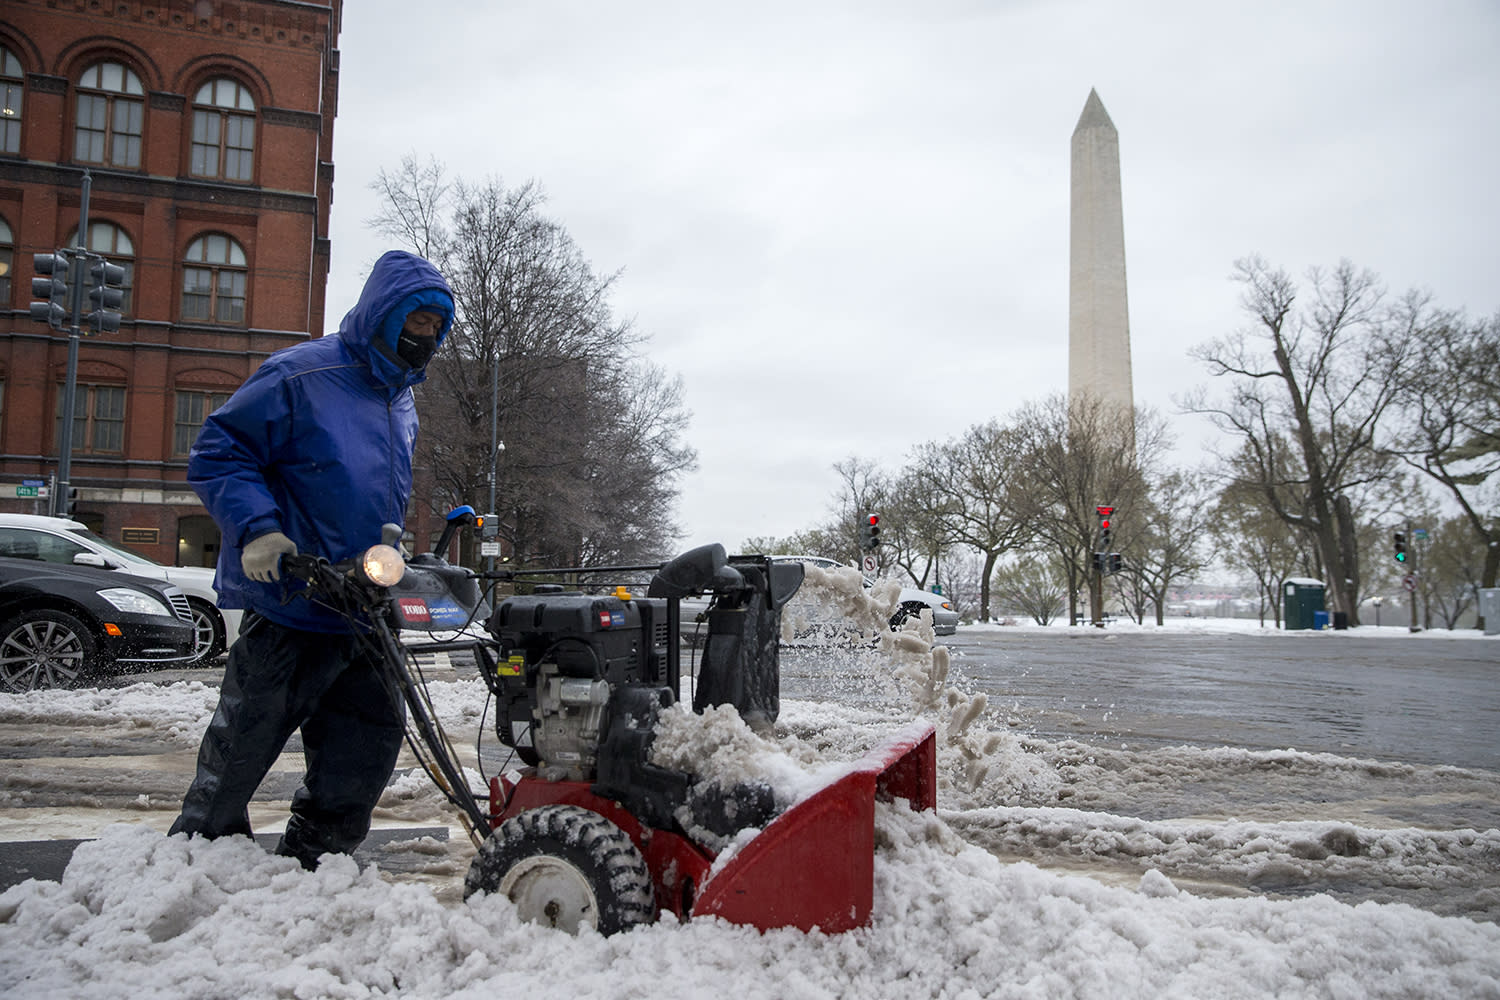 <p>A workman clears snow from a crosswalk near the National Mall in Washington, March 14, 2017. (Shawn Thew/EPA) </p>